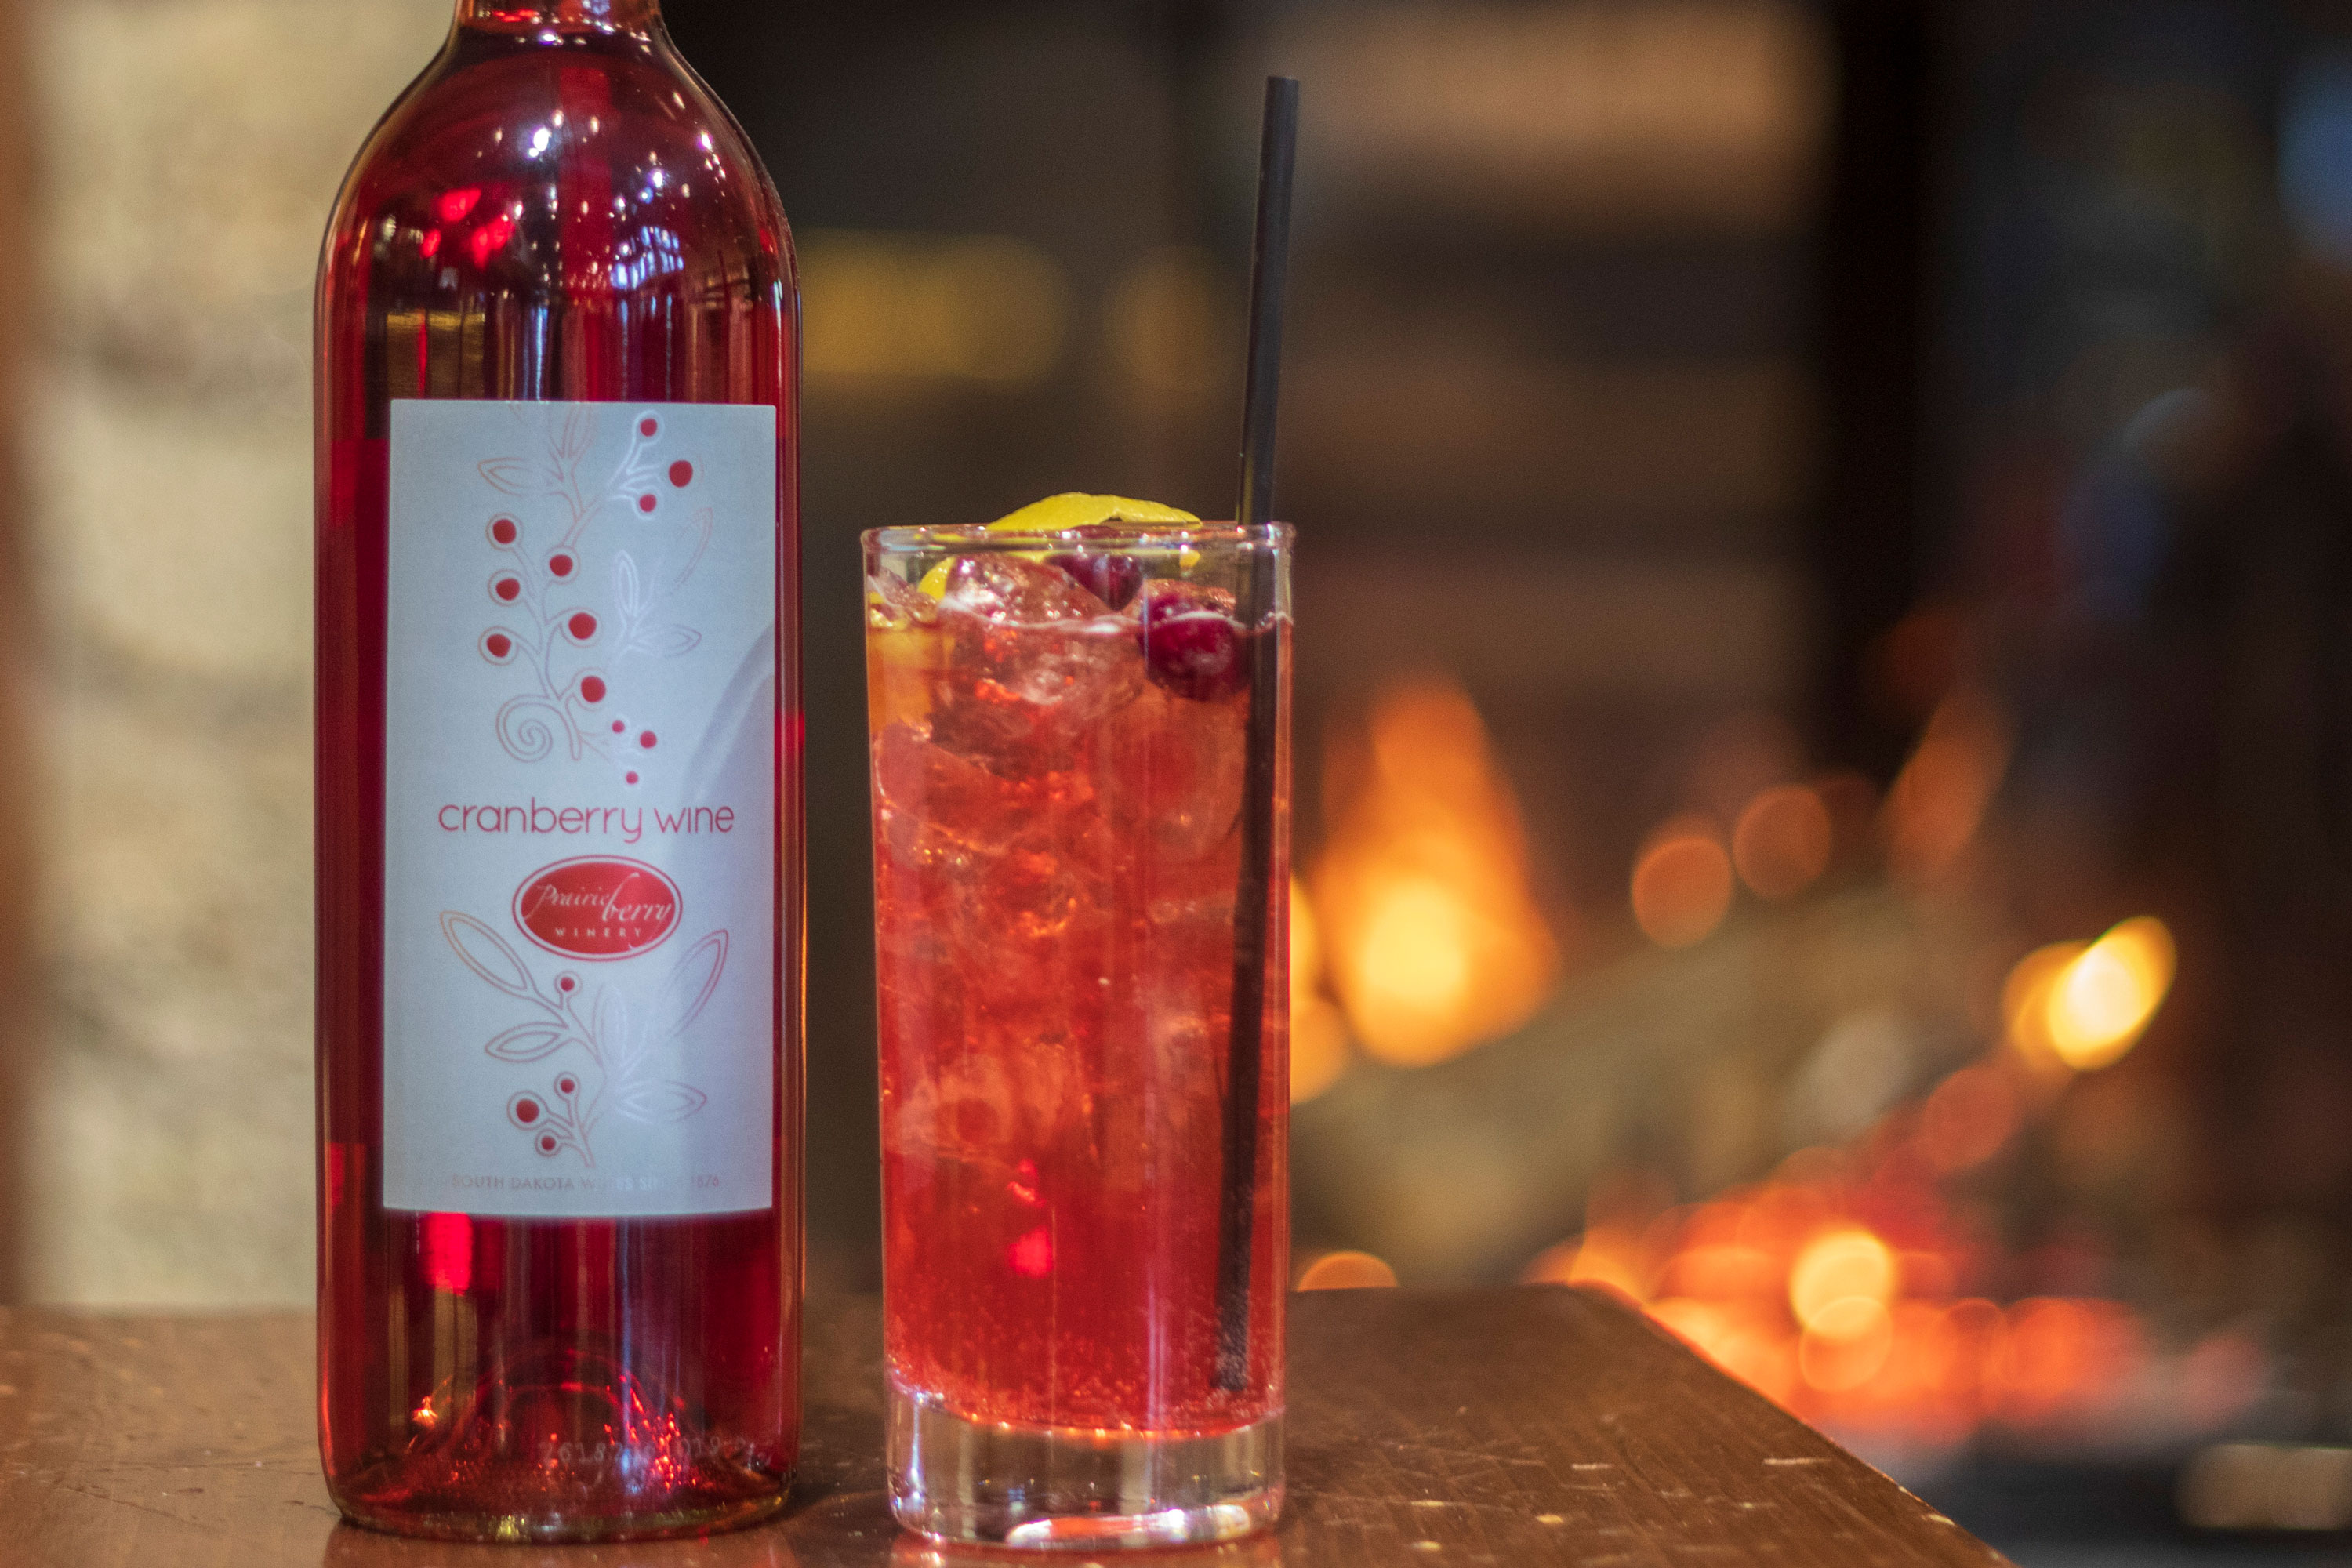 A glass of Cinnamon Cranberry Spritzer with Cranberry wine in front of a fireplace.